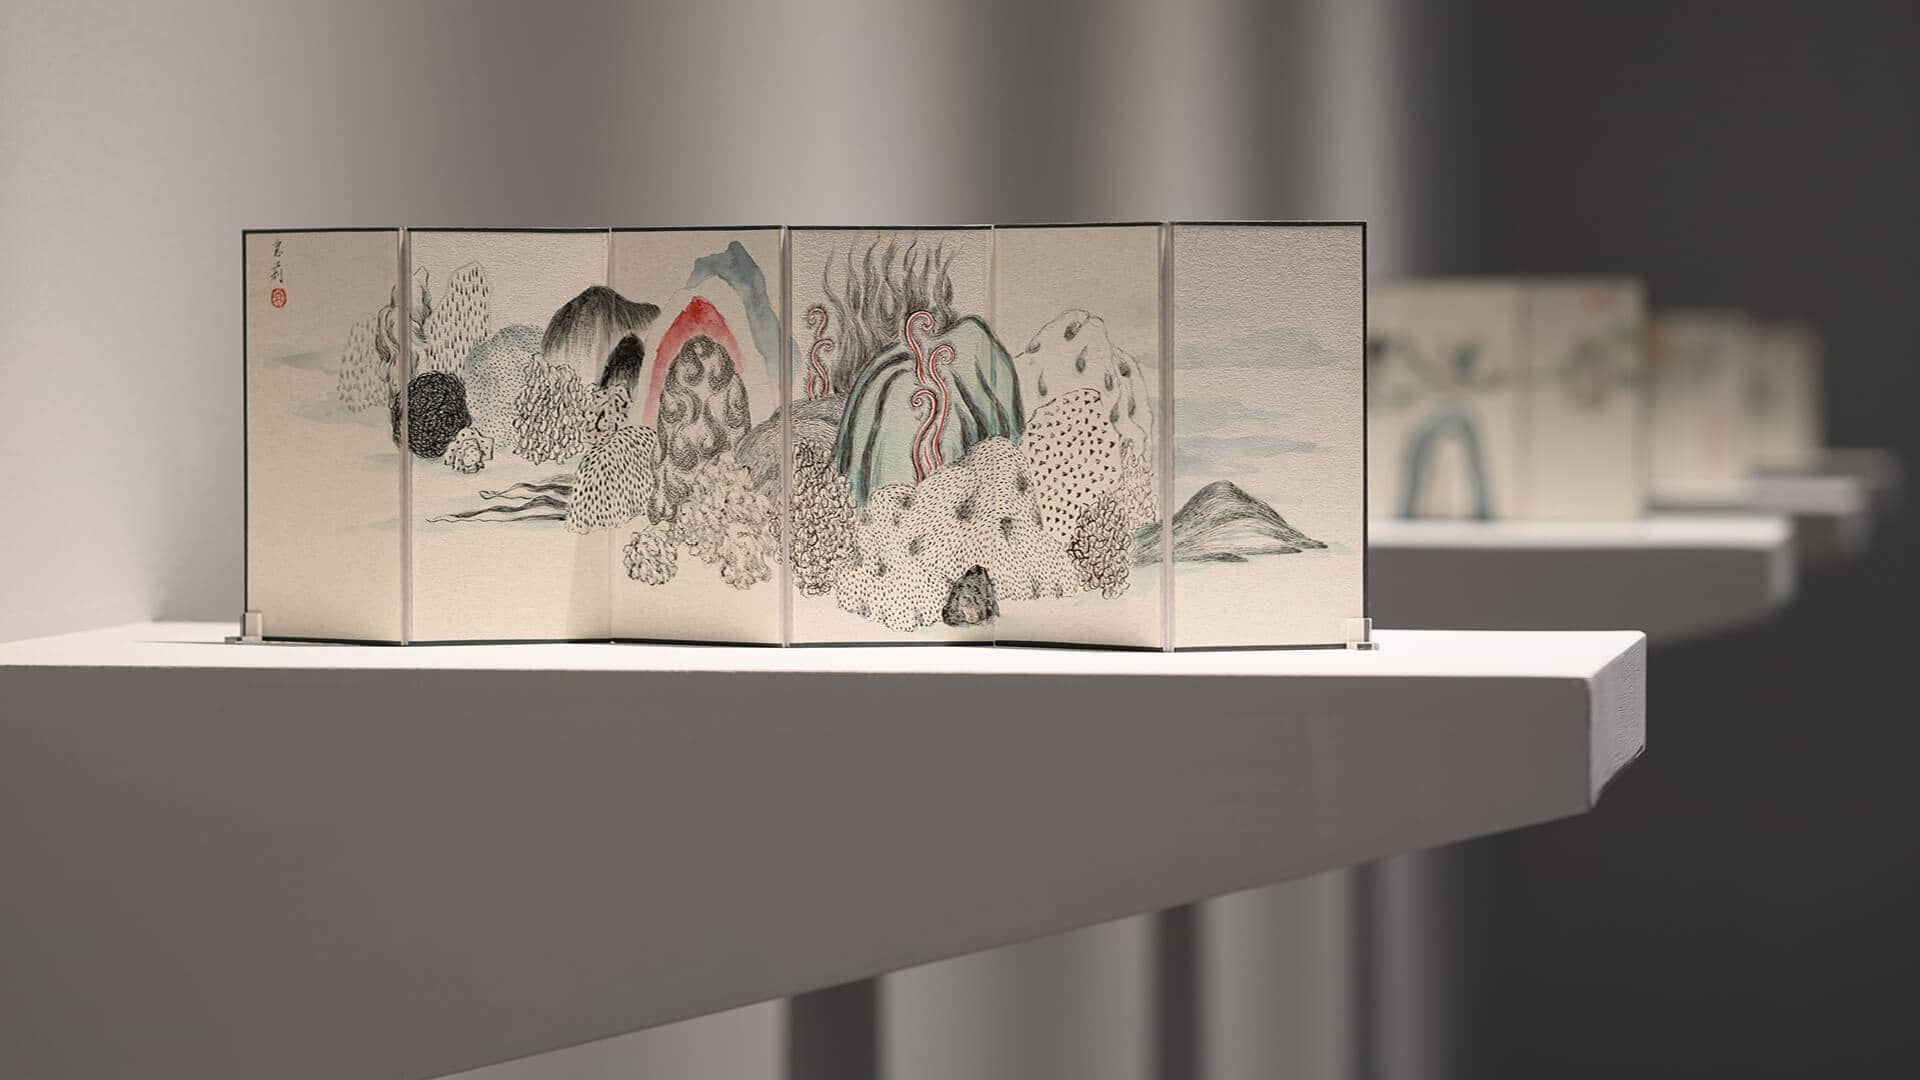 'Hidden Emotion in Texture' presents a new perspective on ancient shanshui painting